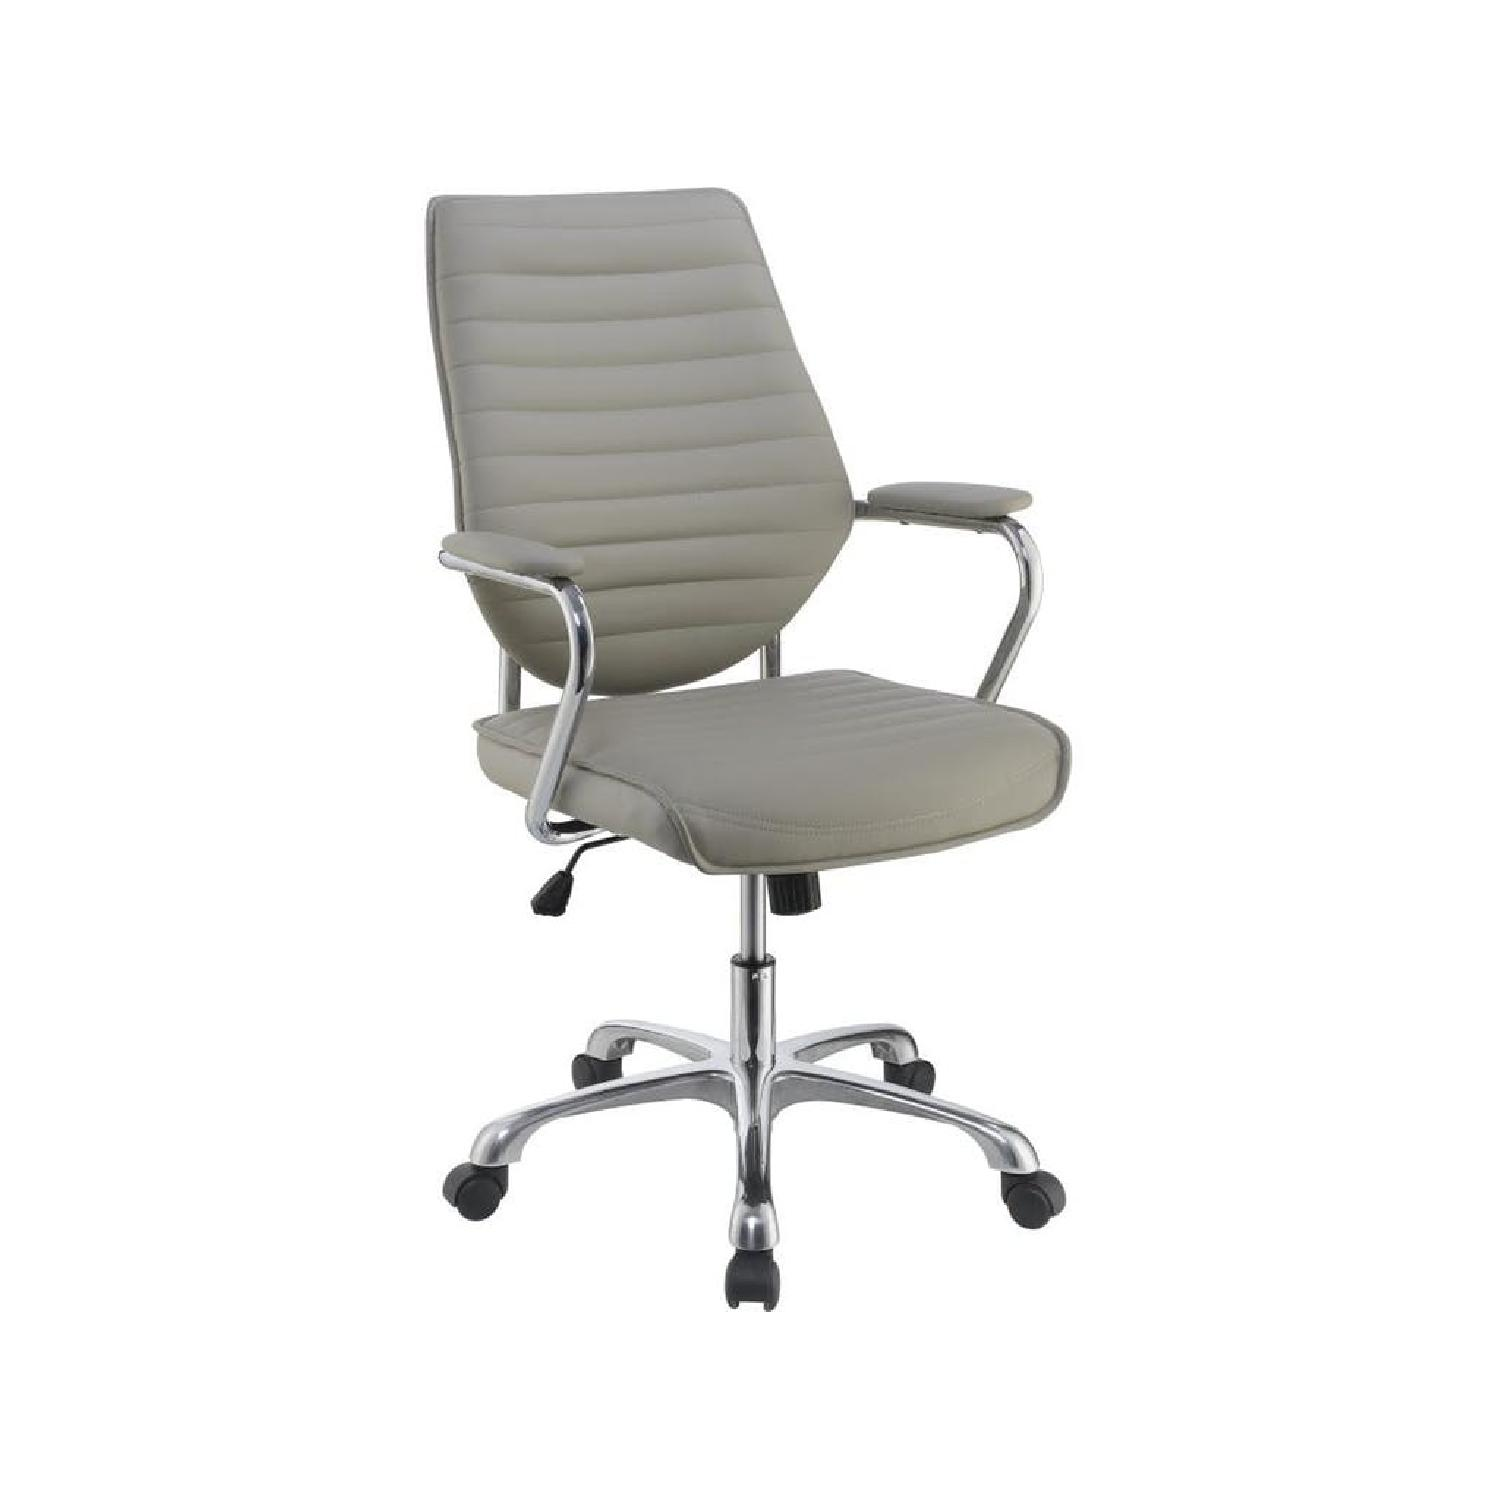 Modern Office Chair in Metal Frame & Grey Leatherette